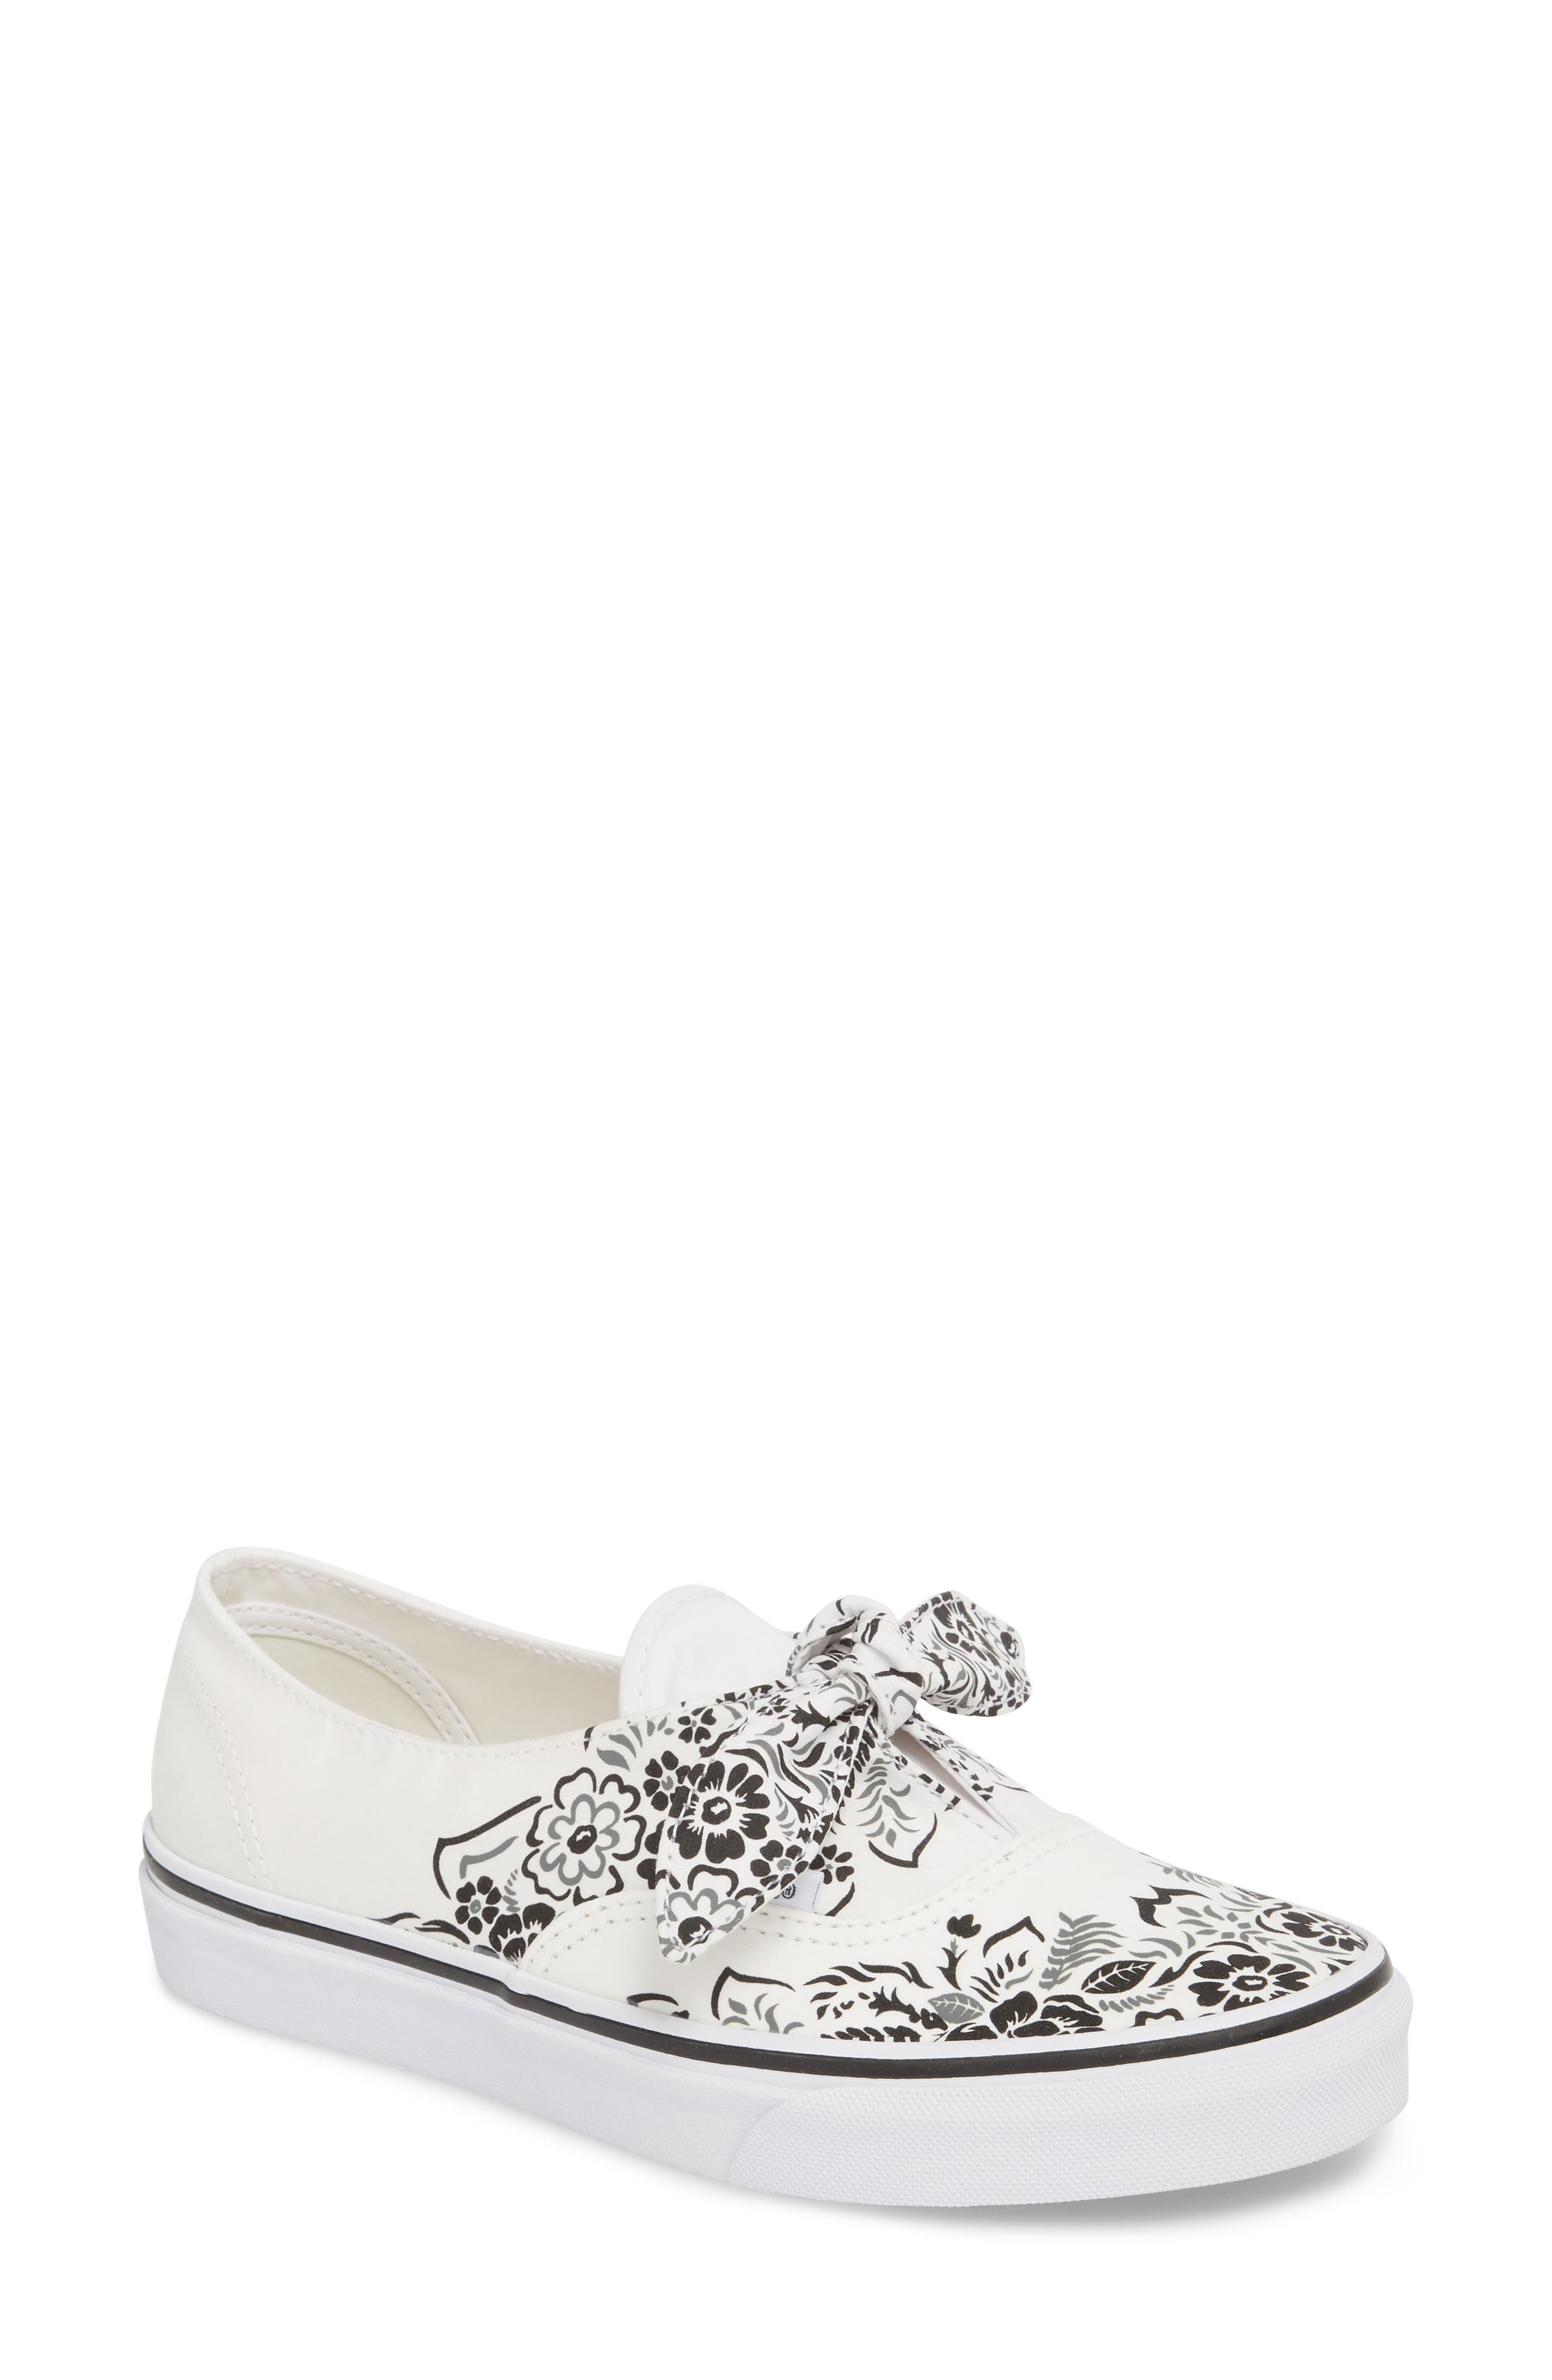 UA Authentic Knotted Floral Bandana Slip-On Sneaker,                             Main thumbnail 1, color,                             100